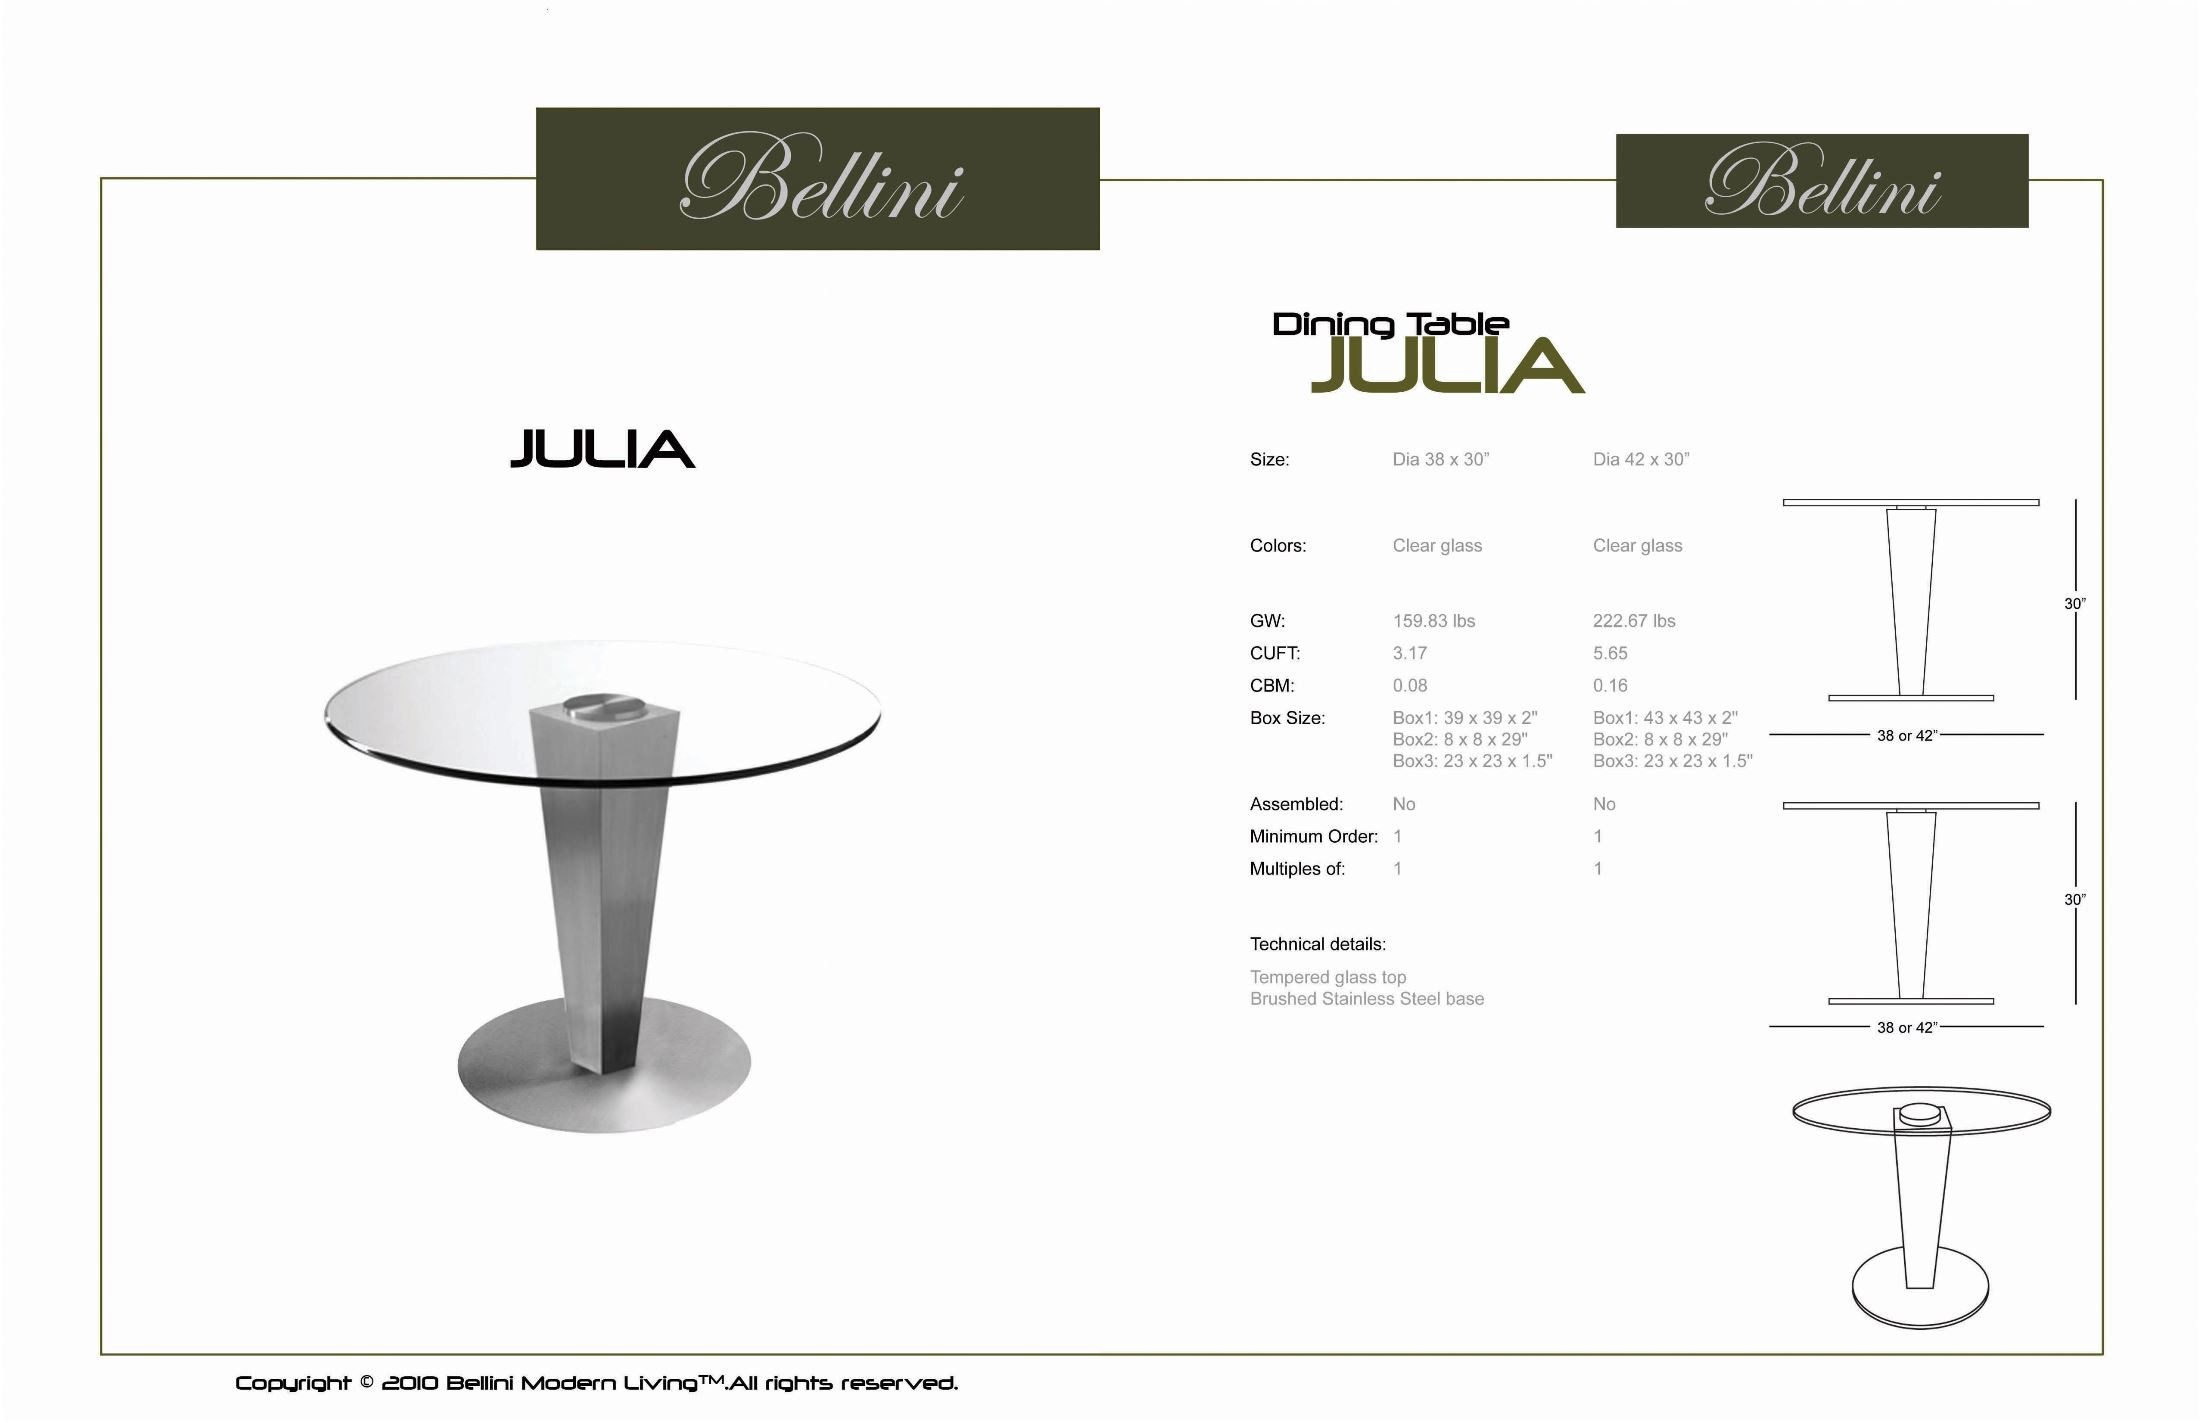 Julia 42quot Glass Round Dining Table from Bellini Modern  : julia21 from colemanfurniture.com size 2200 x 1423 jpeg 166kB